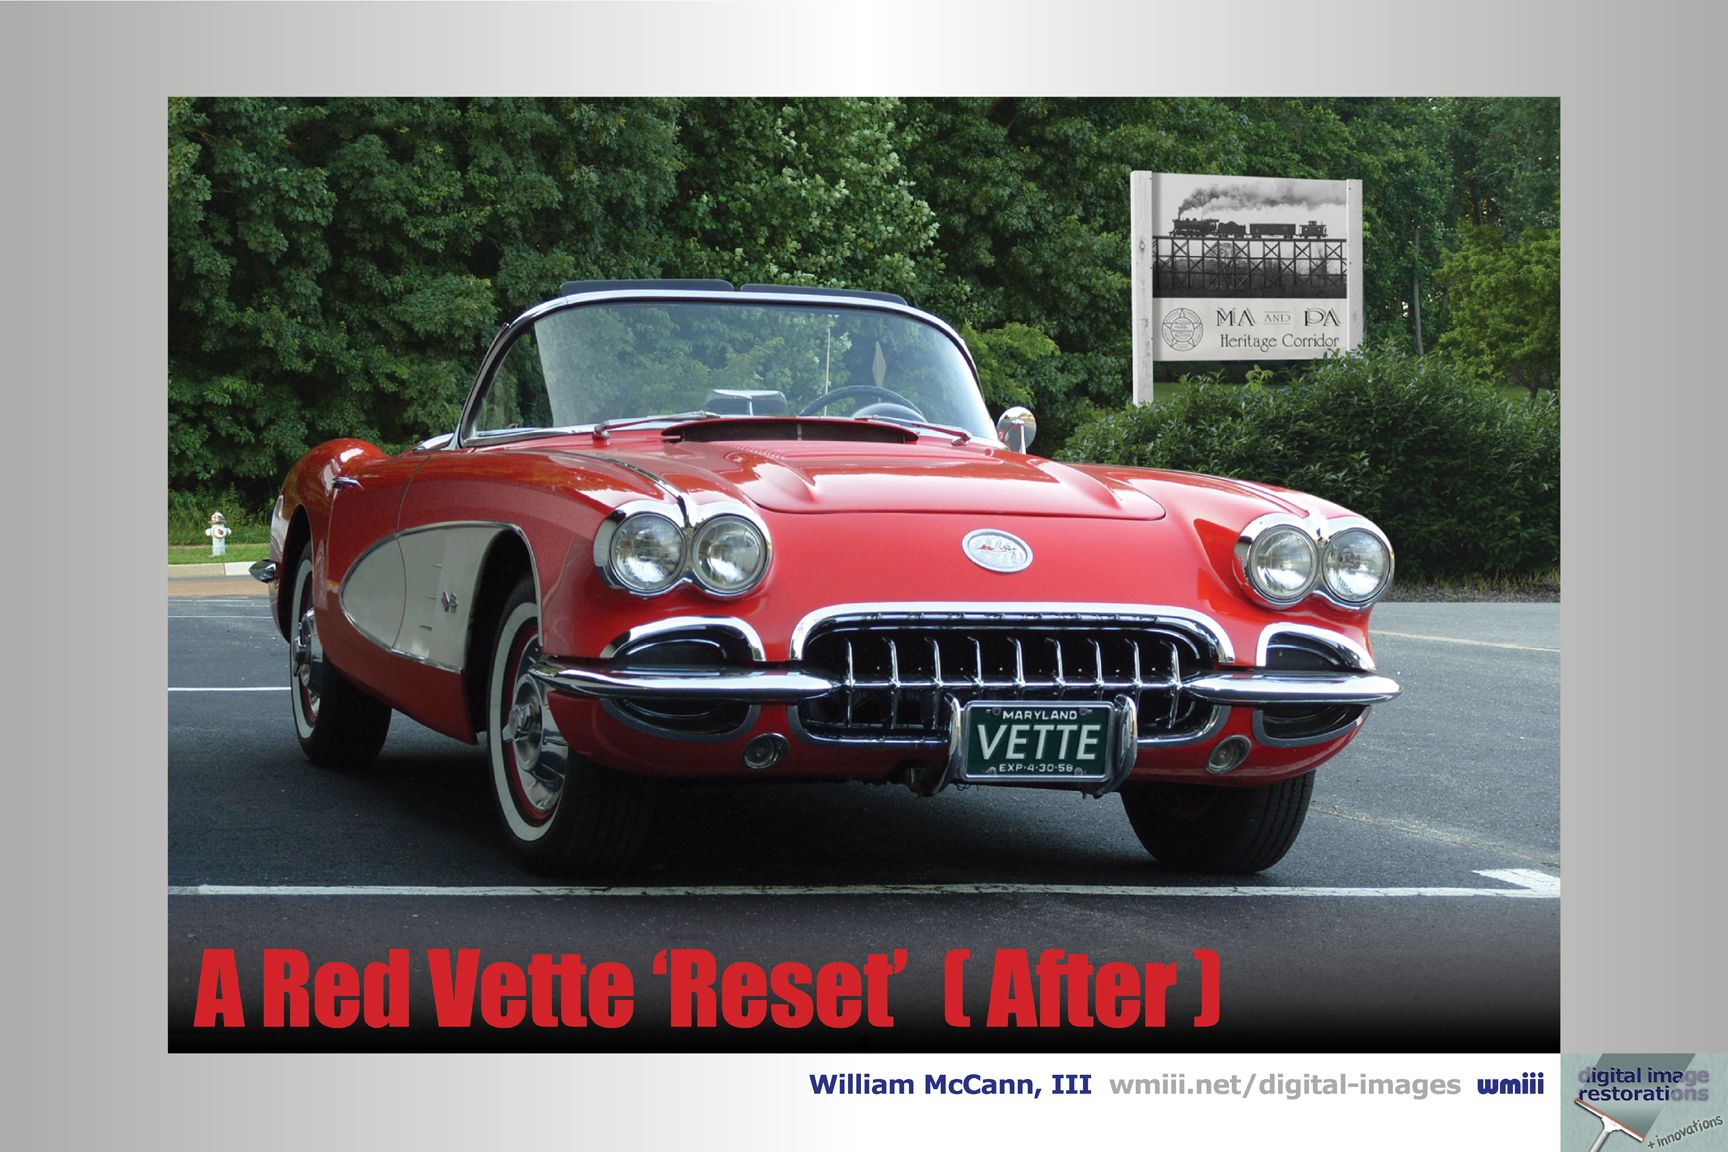 Red Vette Reset (After)